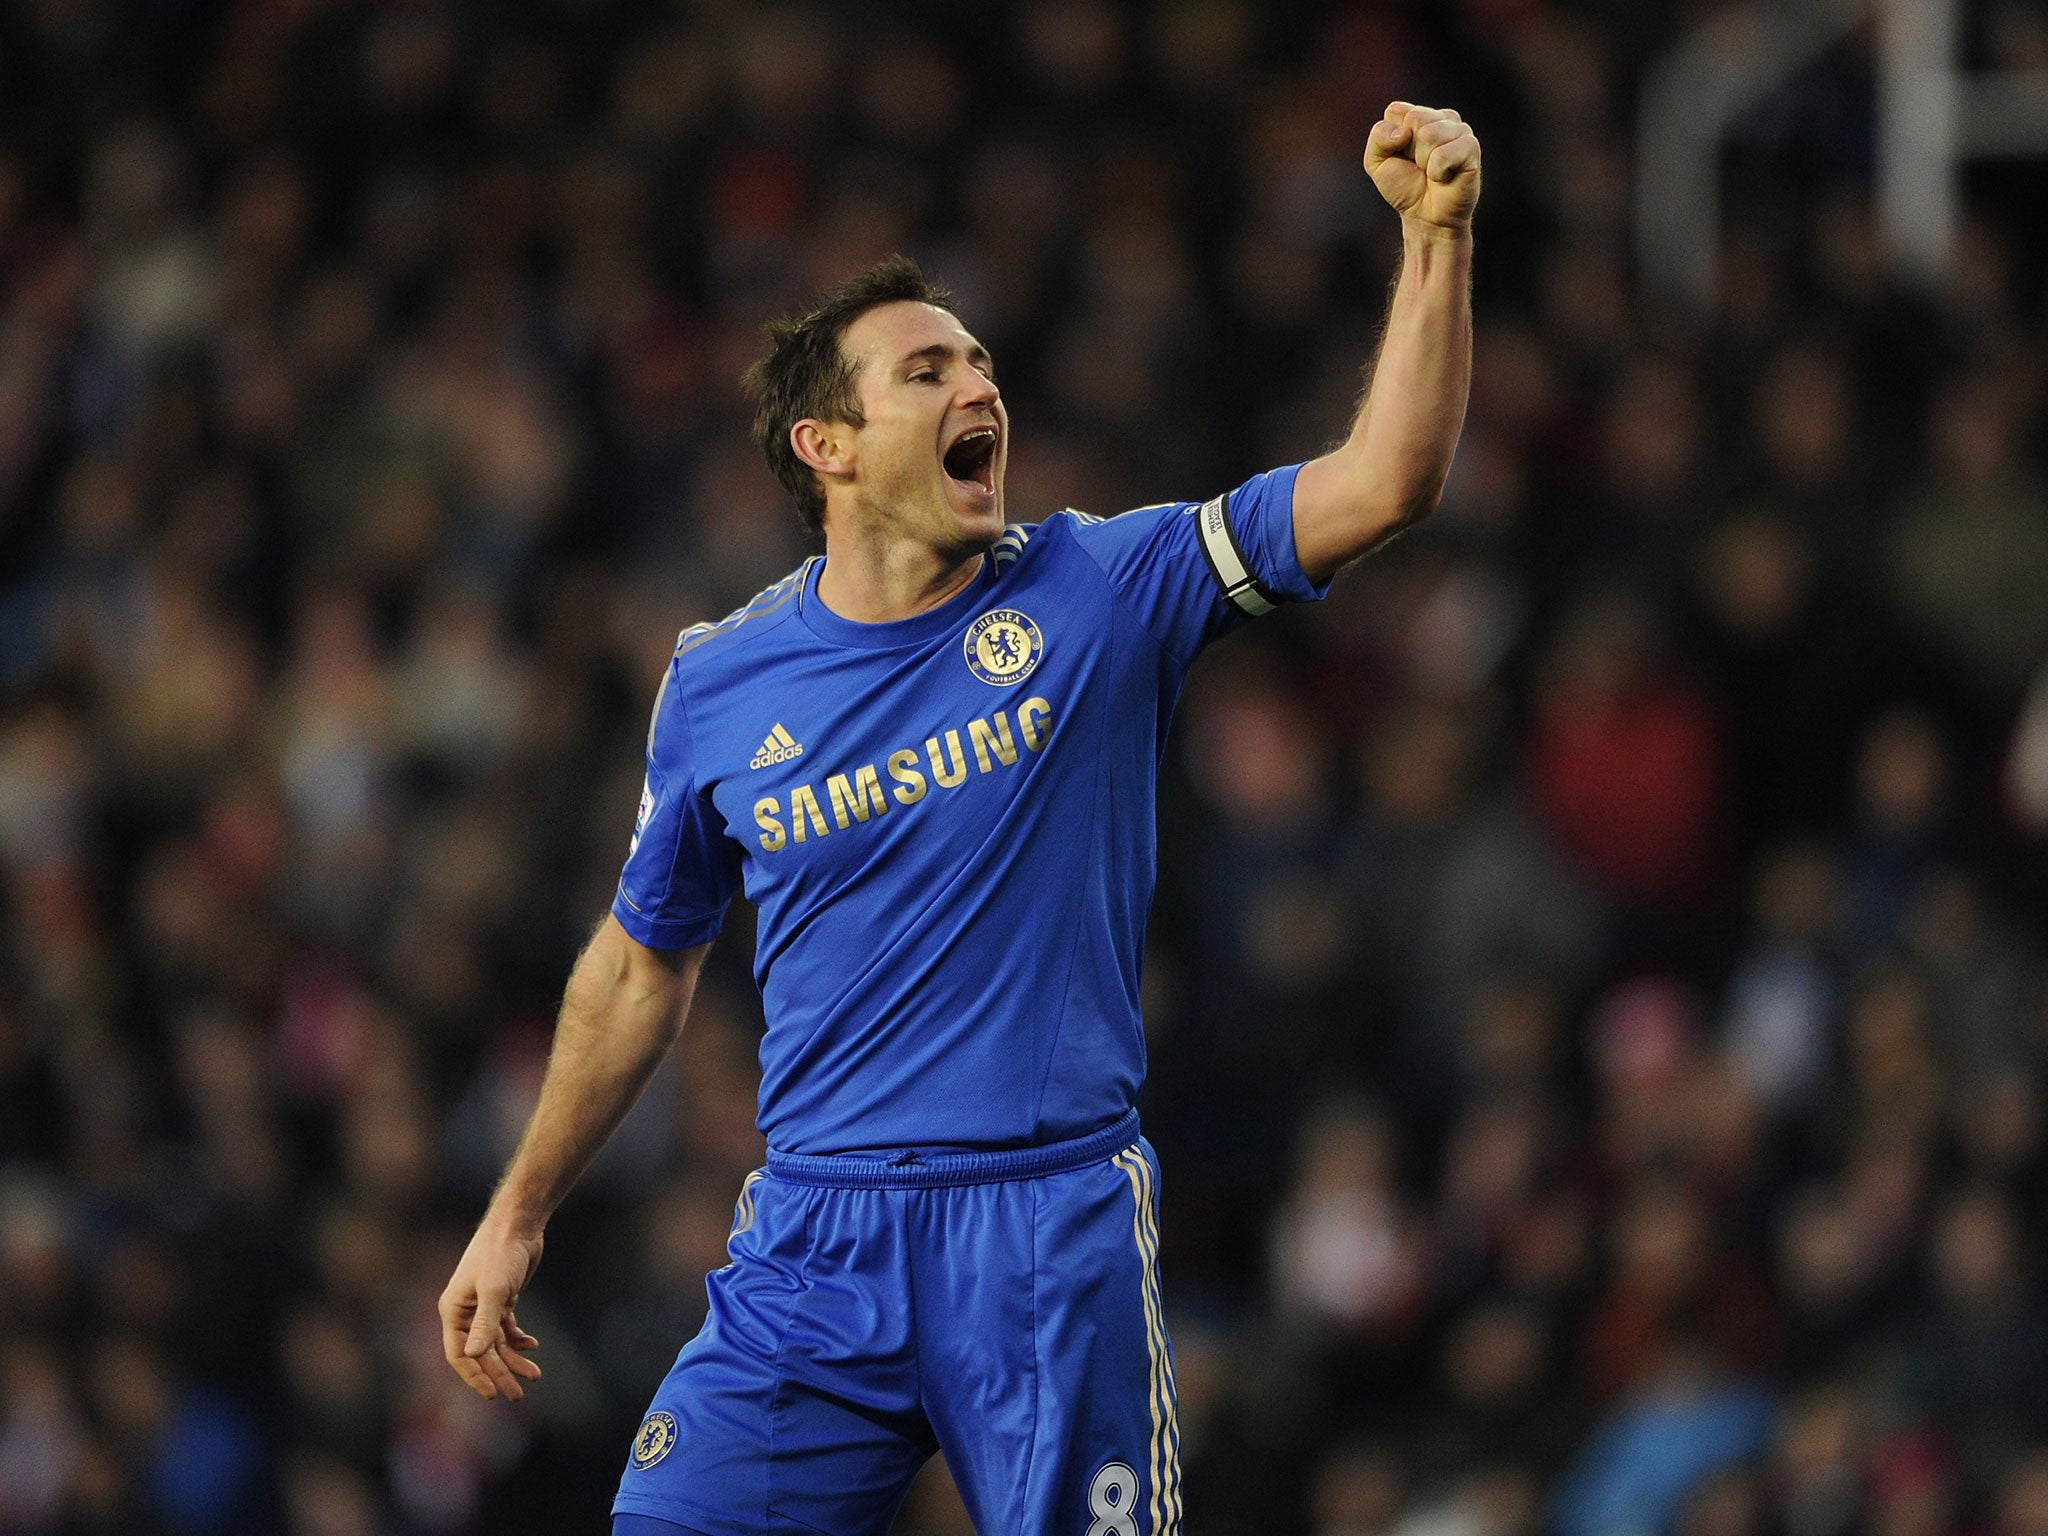 Frank Lampard announces his retirement from football at 38